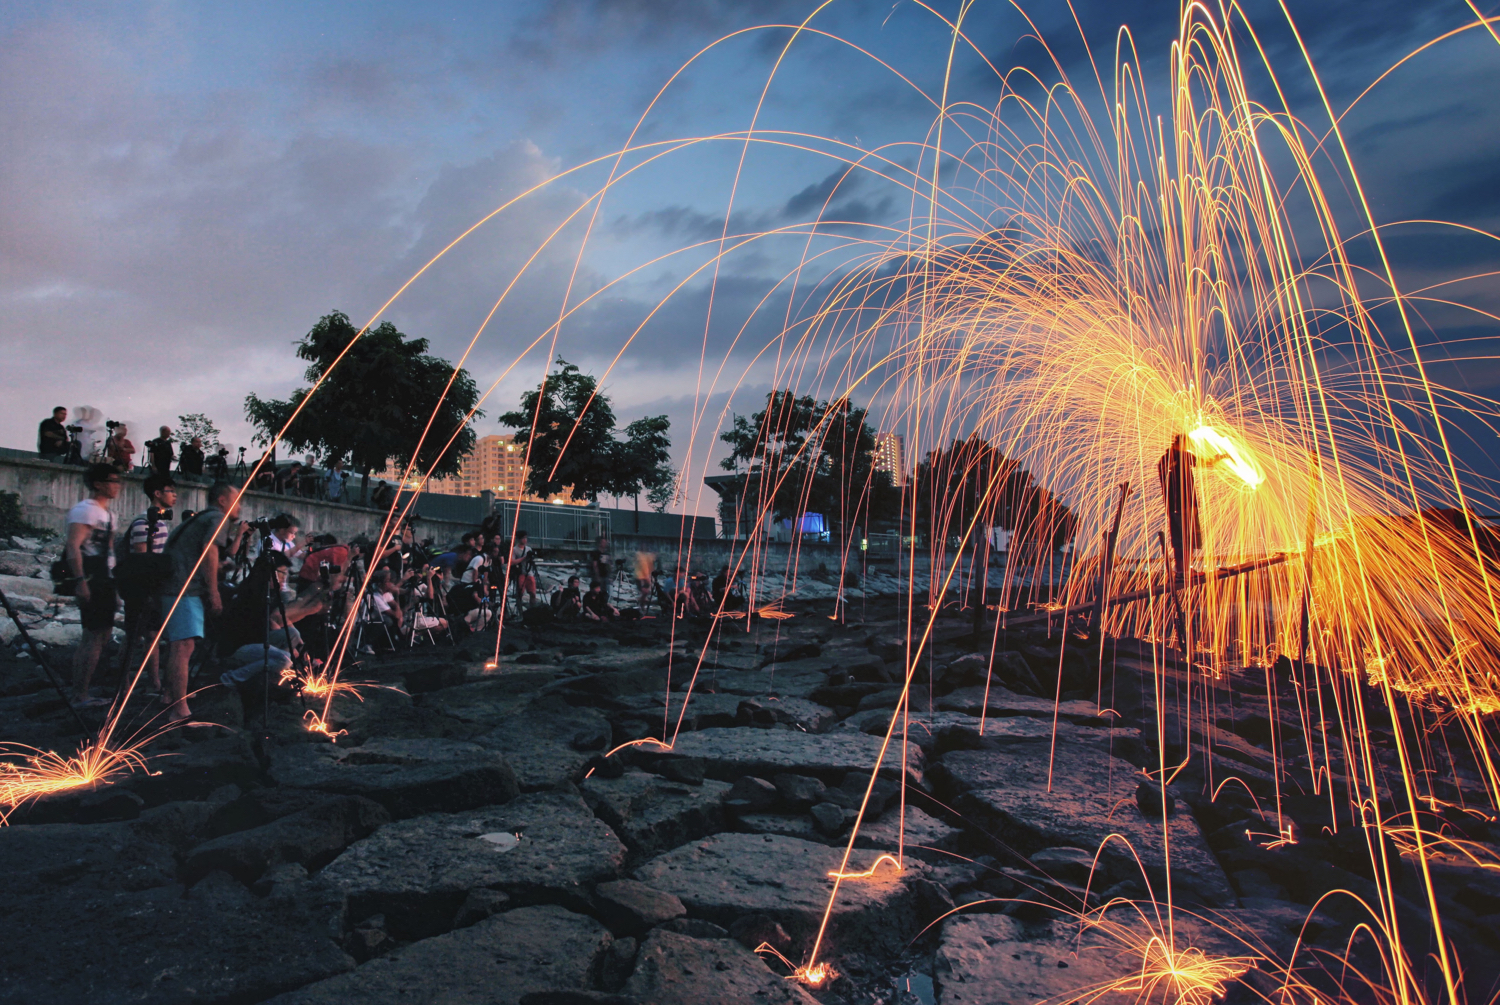 Image: In this photo, a group of photographers take part in a wire wool workshop.